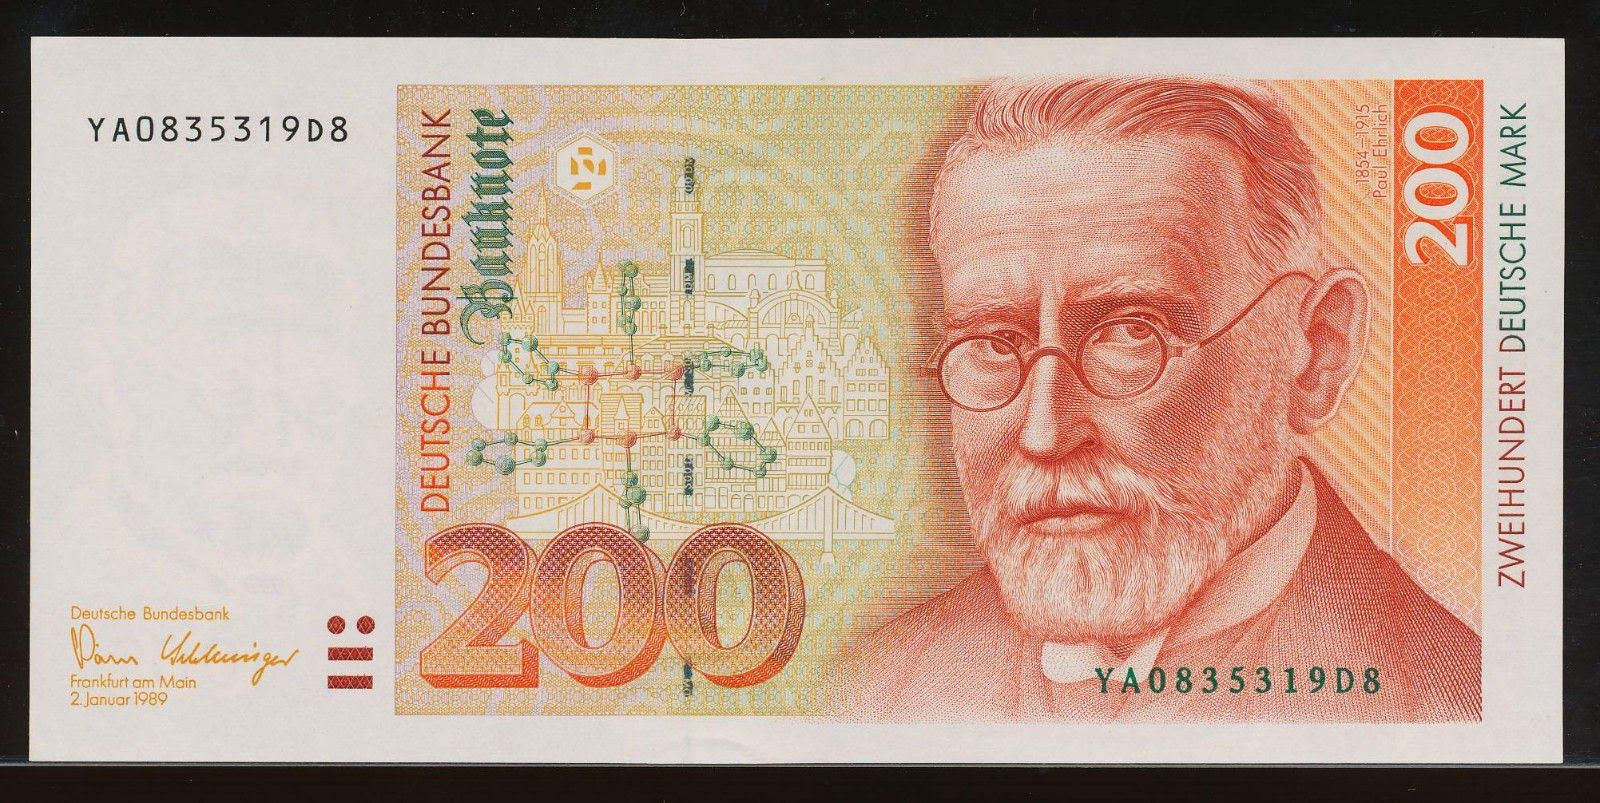 German banknotes 200 DM Deutsche Mark banknote, issued by